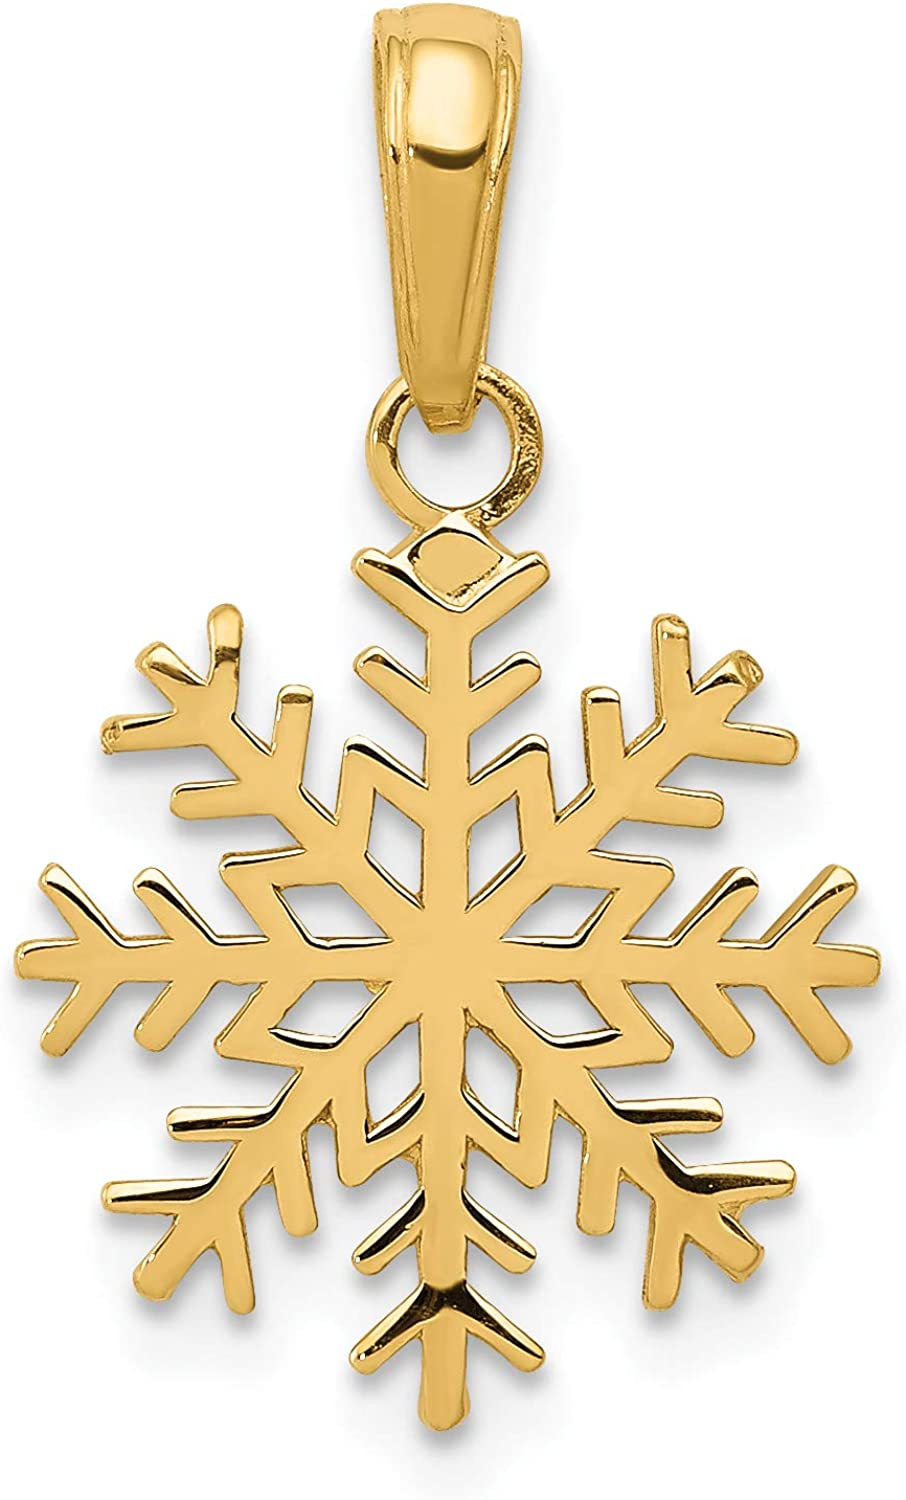 14k Yellow Gold 3-D Snowflake Pendant with Polished Finish 20x14mm